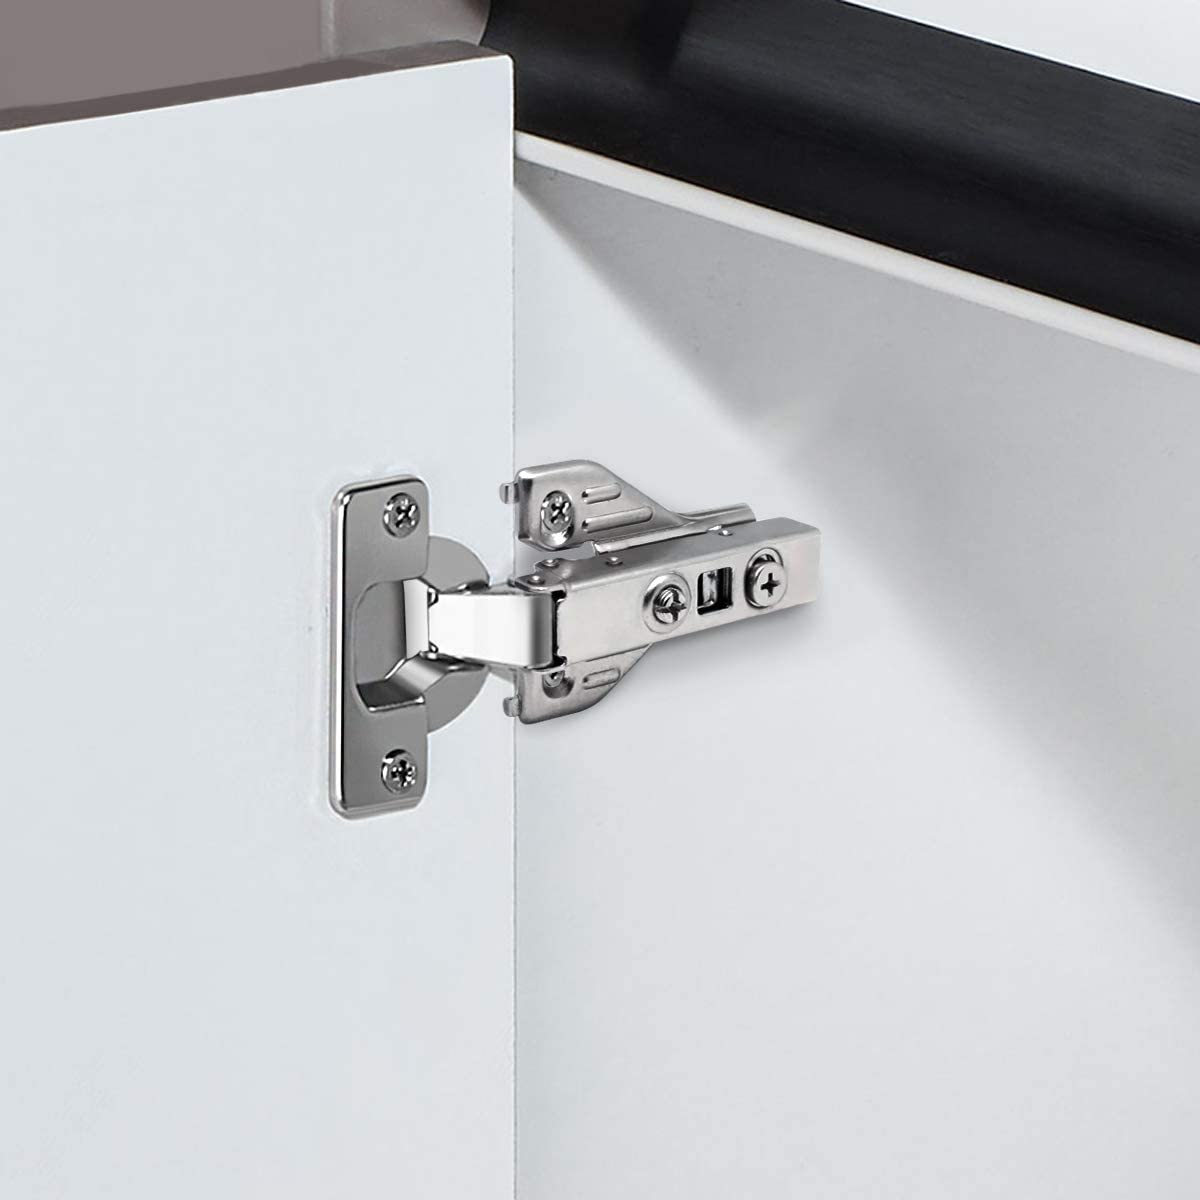 self-close door hinge example